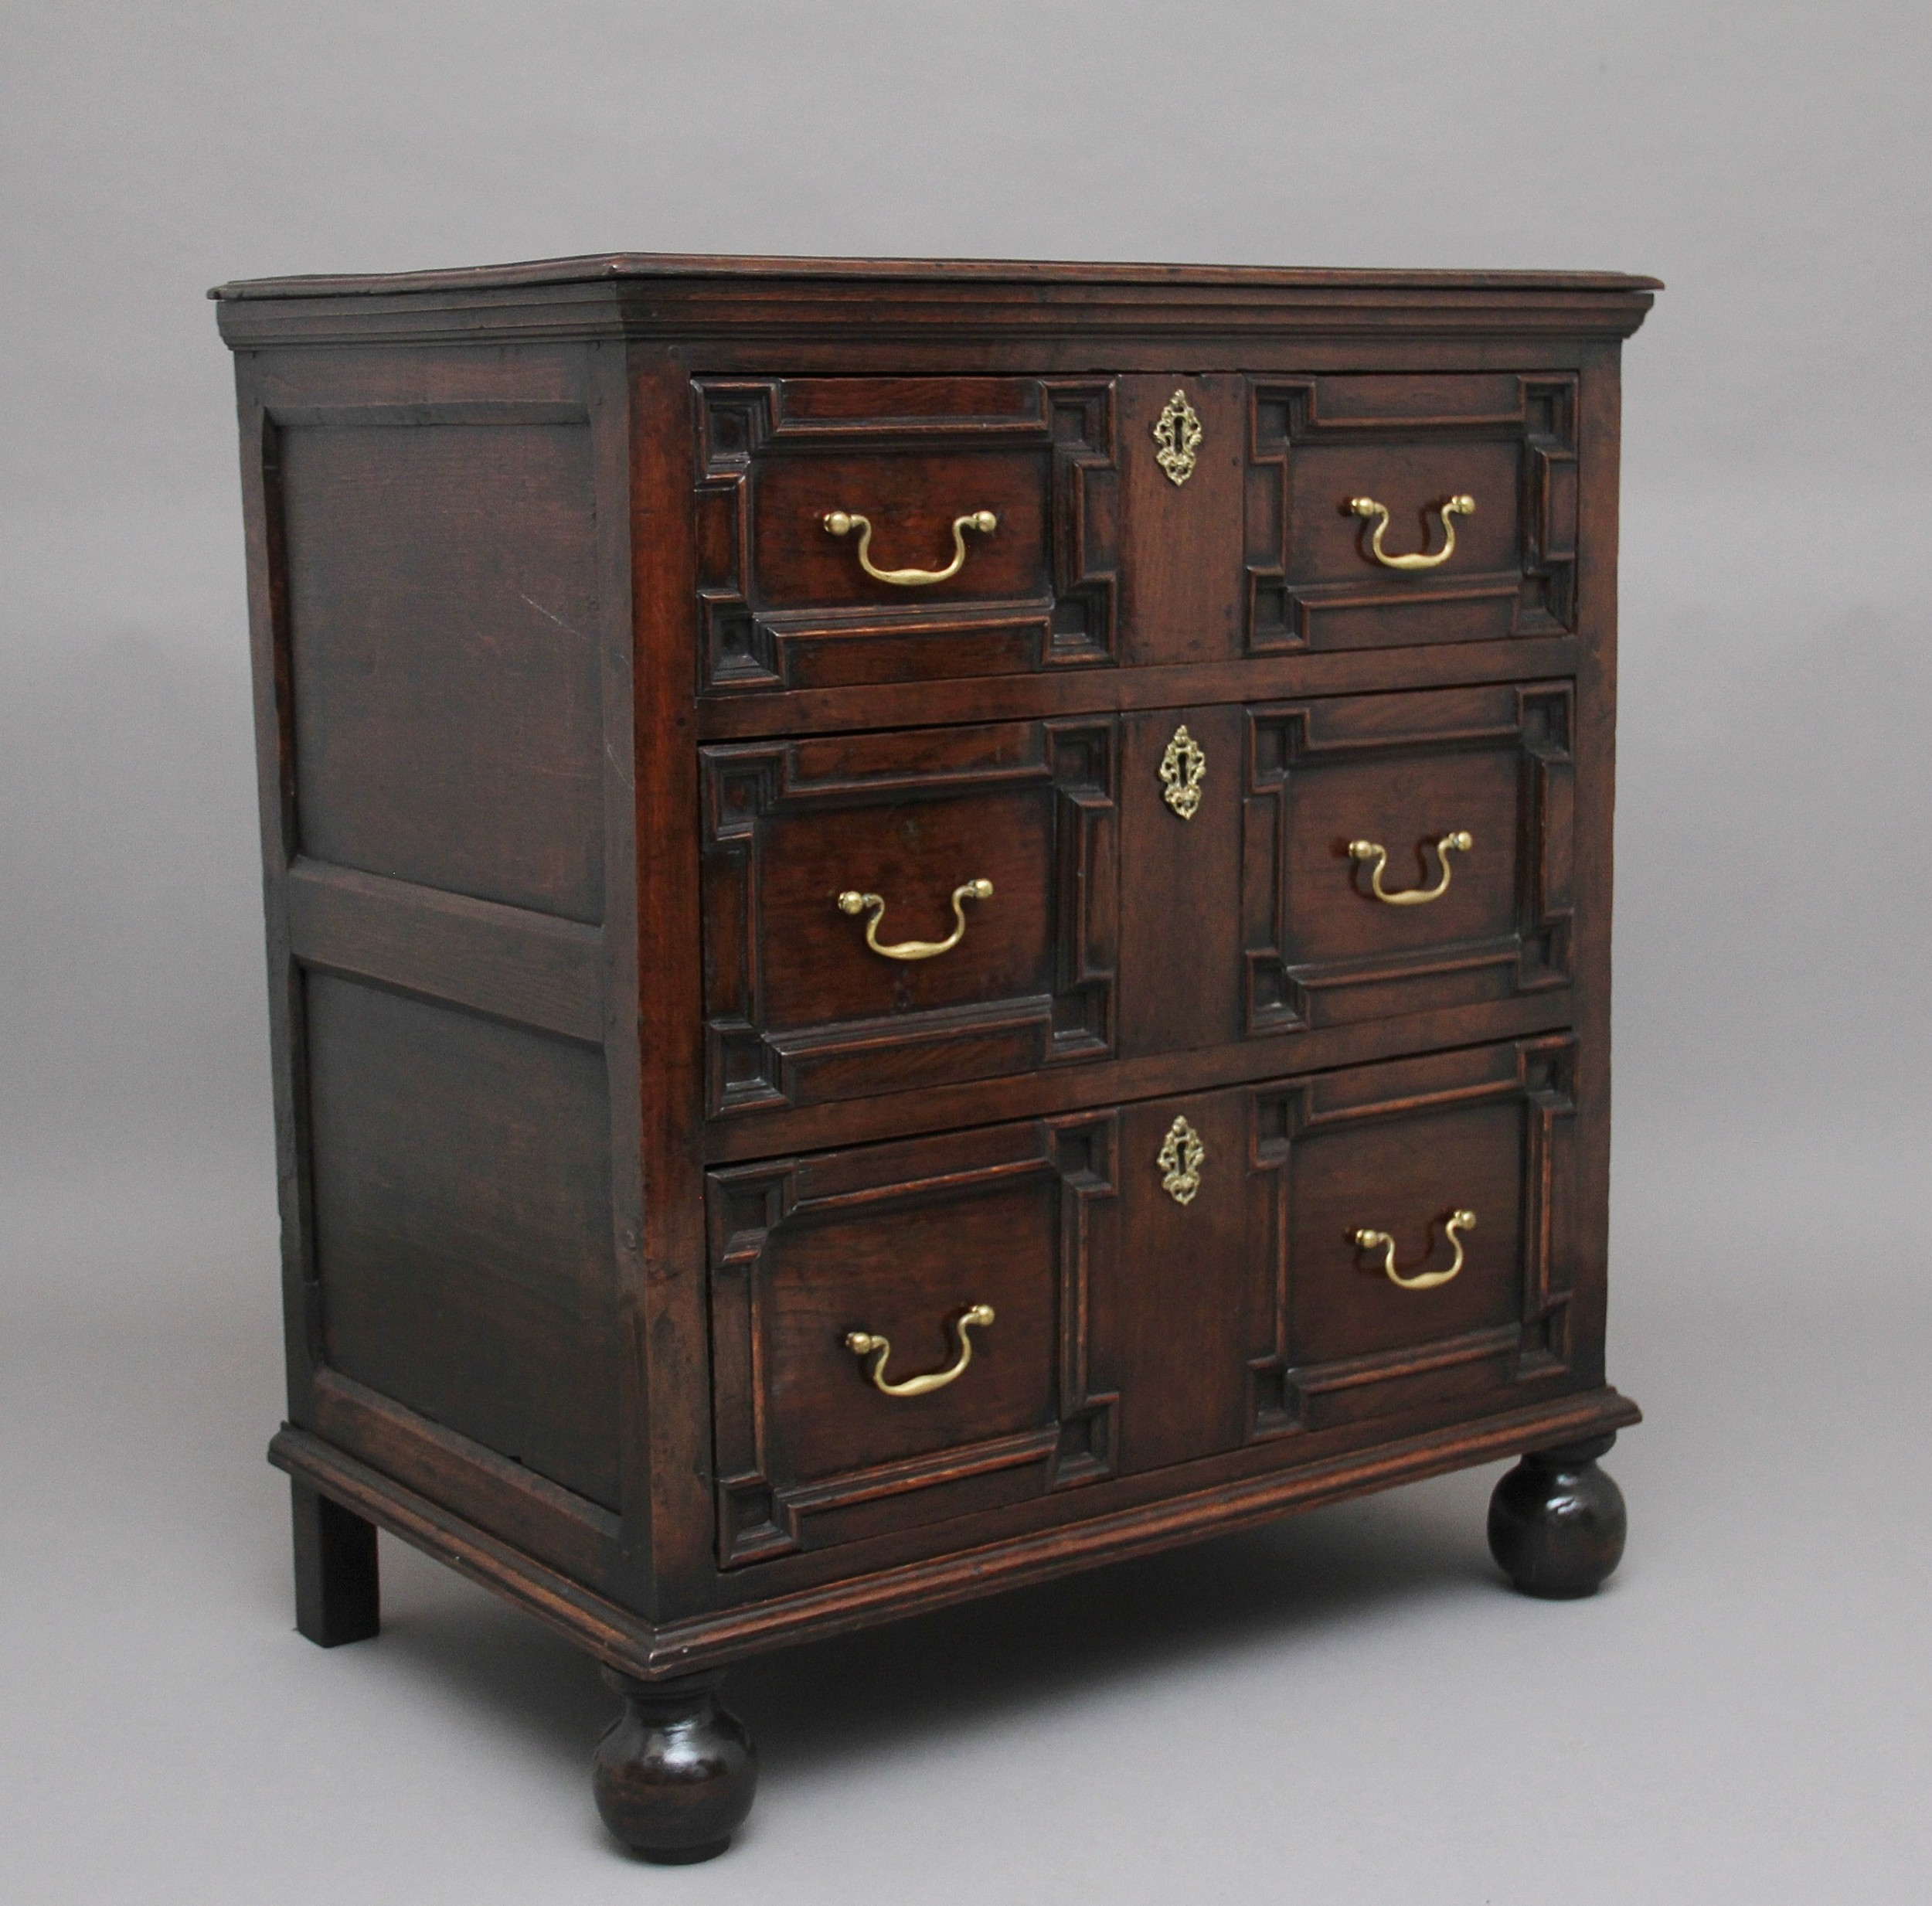 mid 18th century oak moulded front chest of drawers